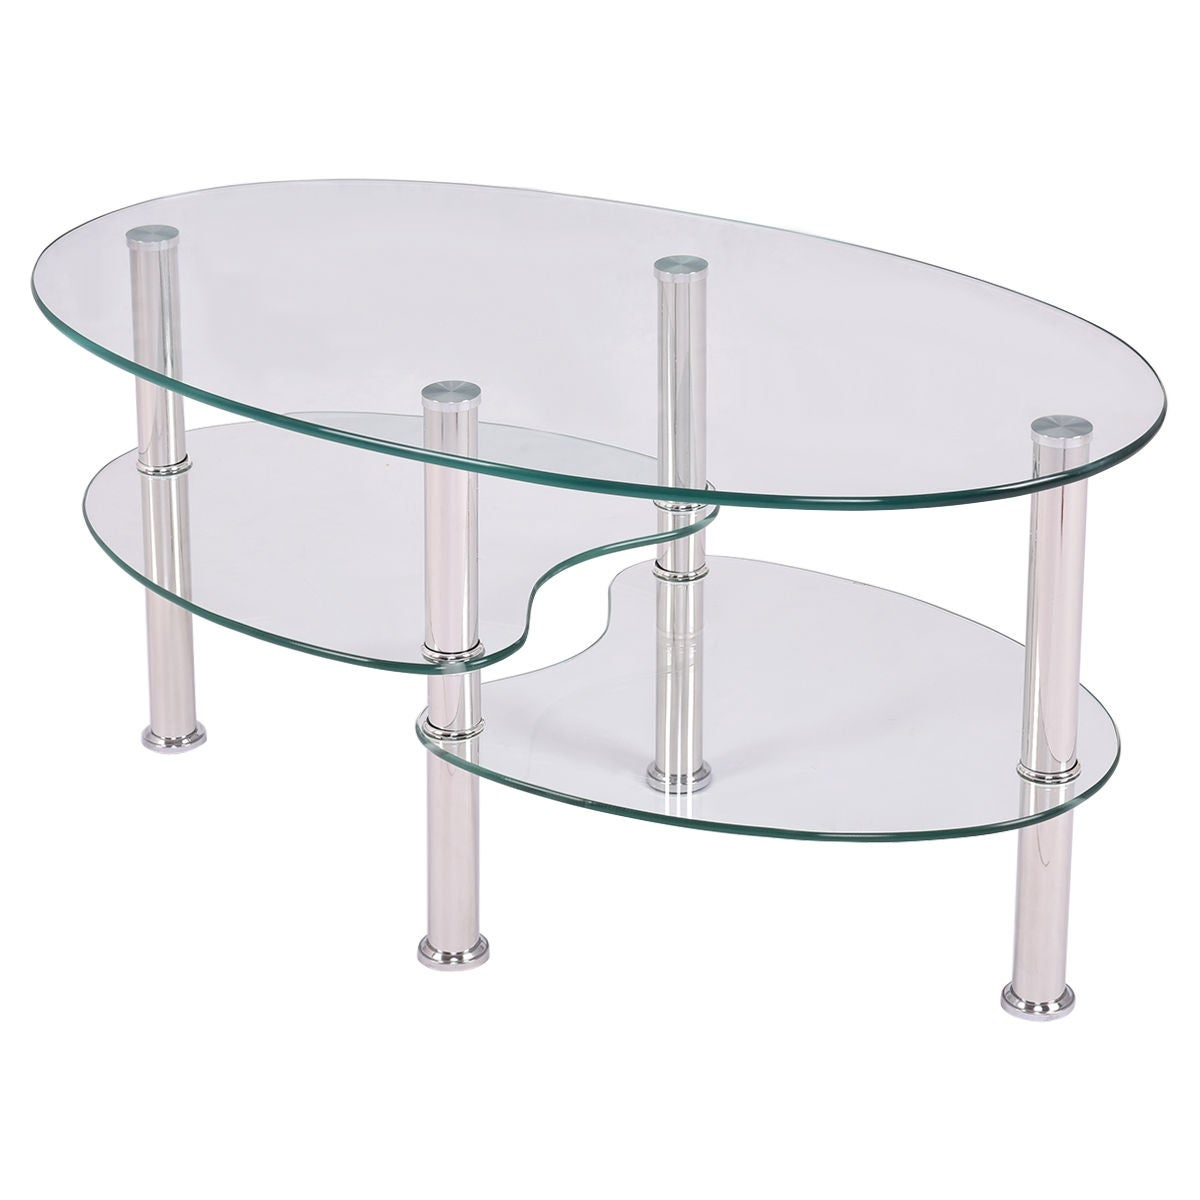 Shop Costway Tempered Glass Oval Side Coffee Table Shelf Chrome Base Living  Room Clear   Free Shipping Today   Overstock.com   17800788